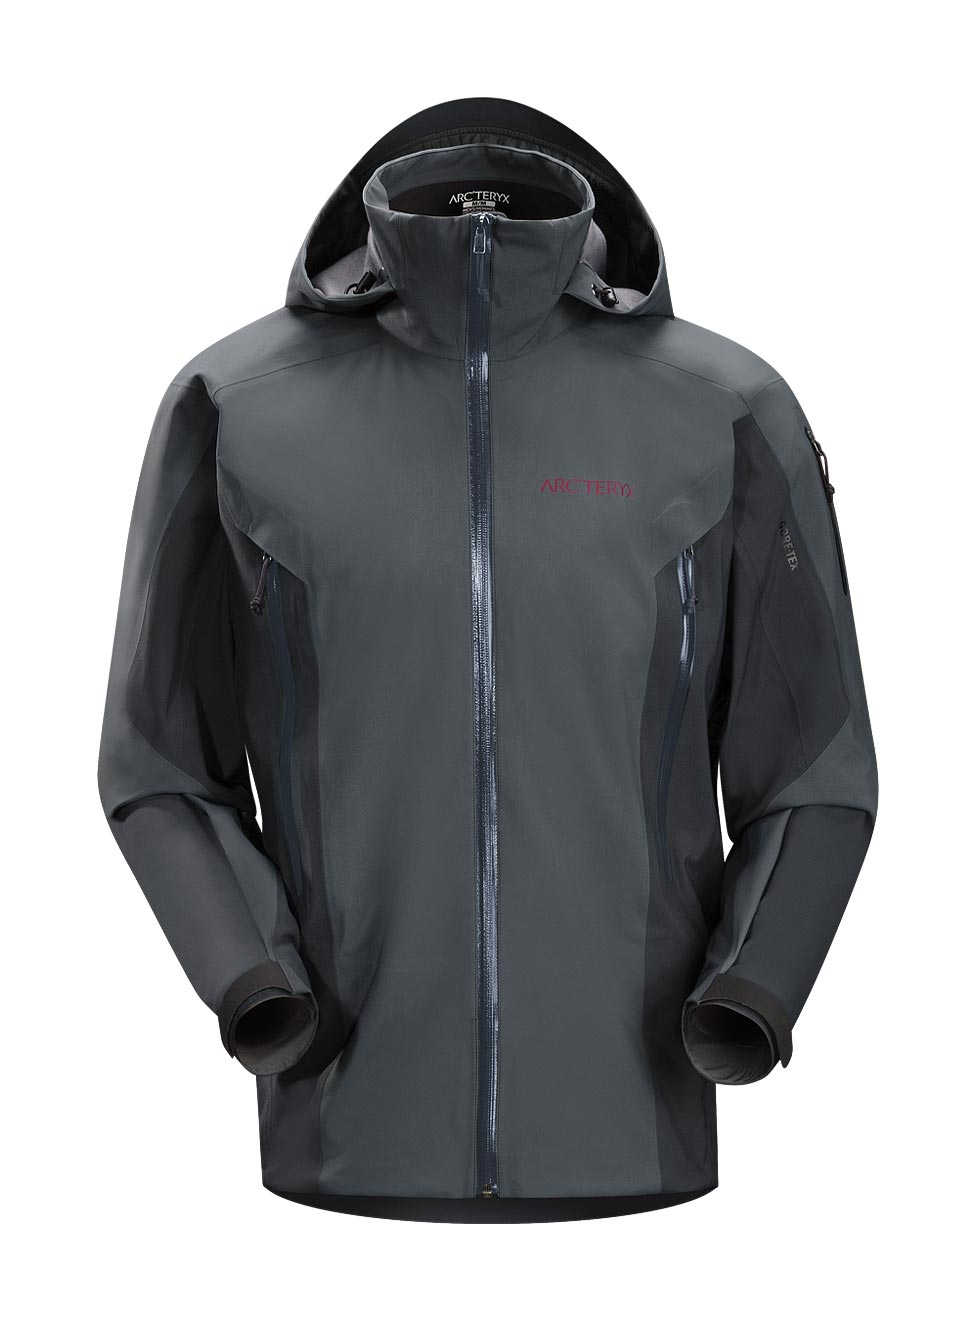 Arcteryx Night shade Stingray Jacket